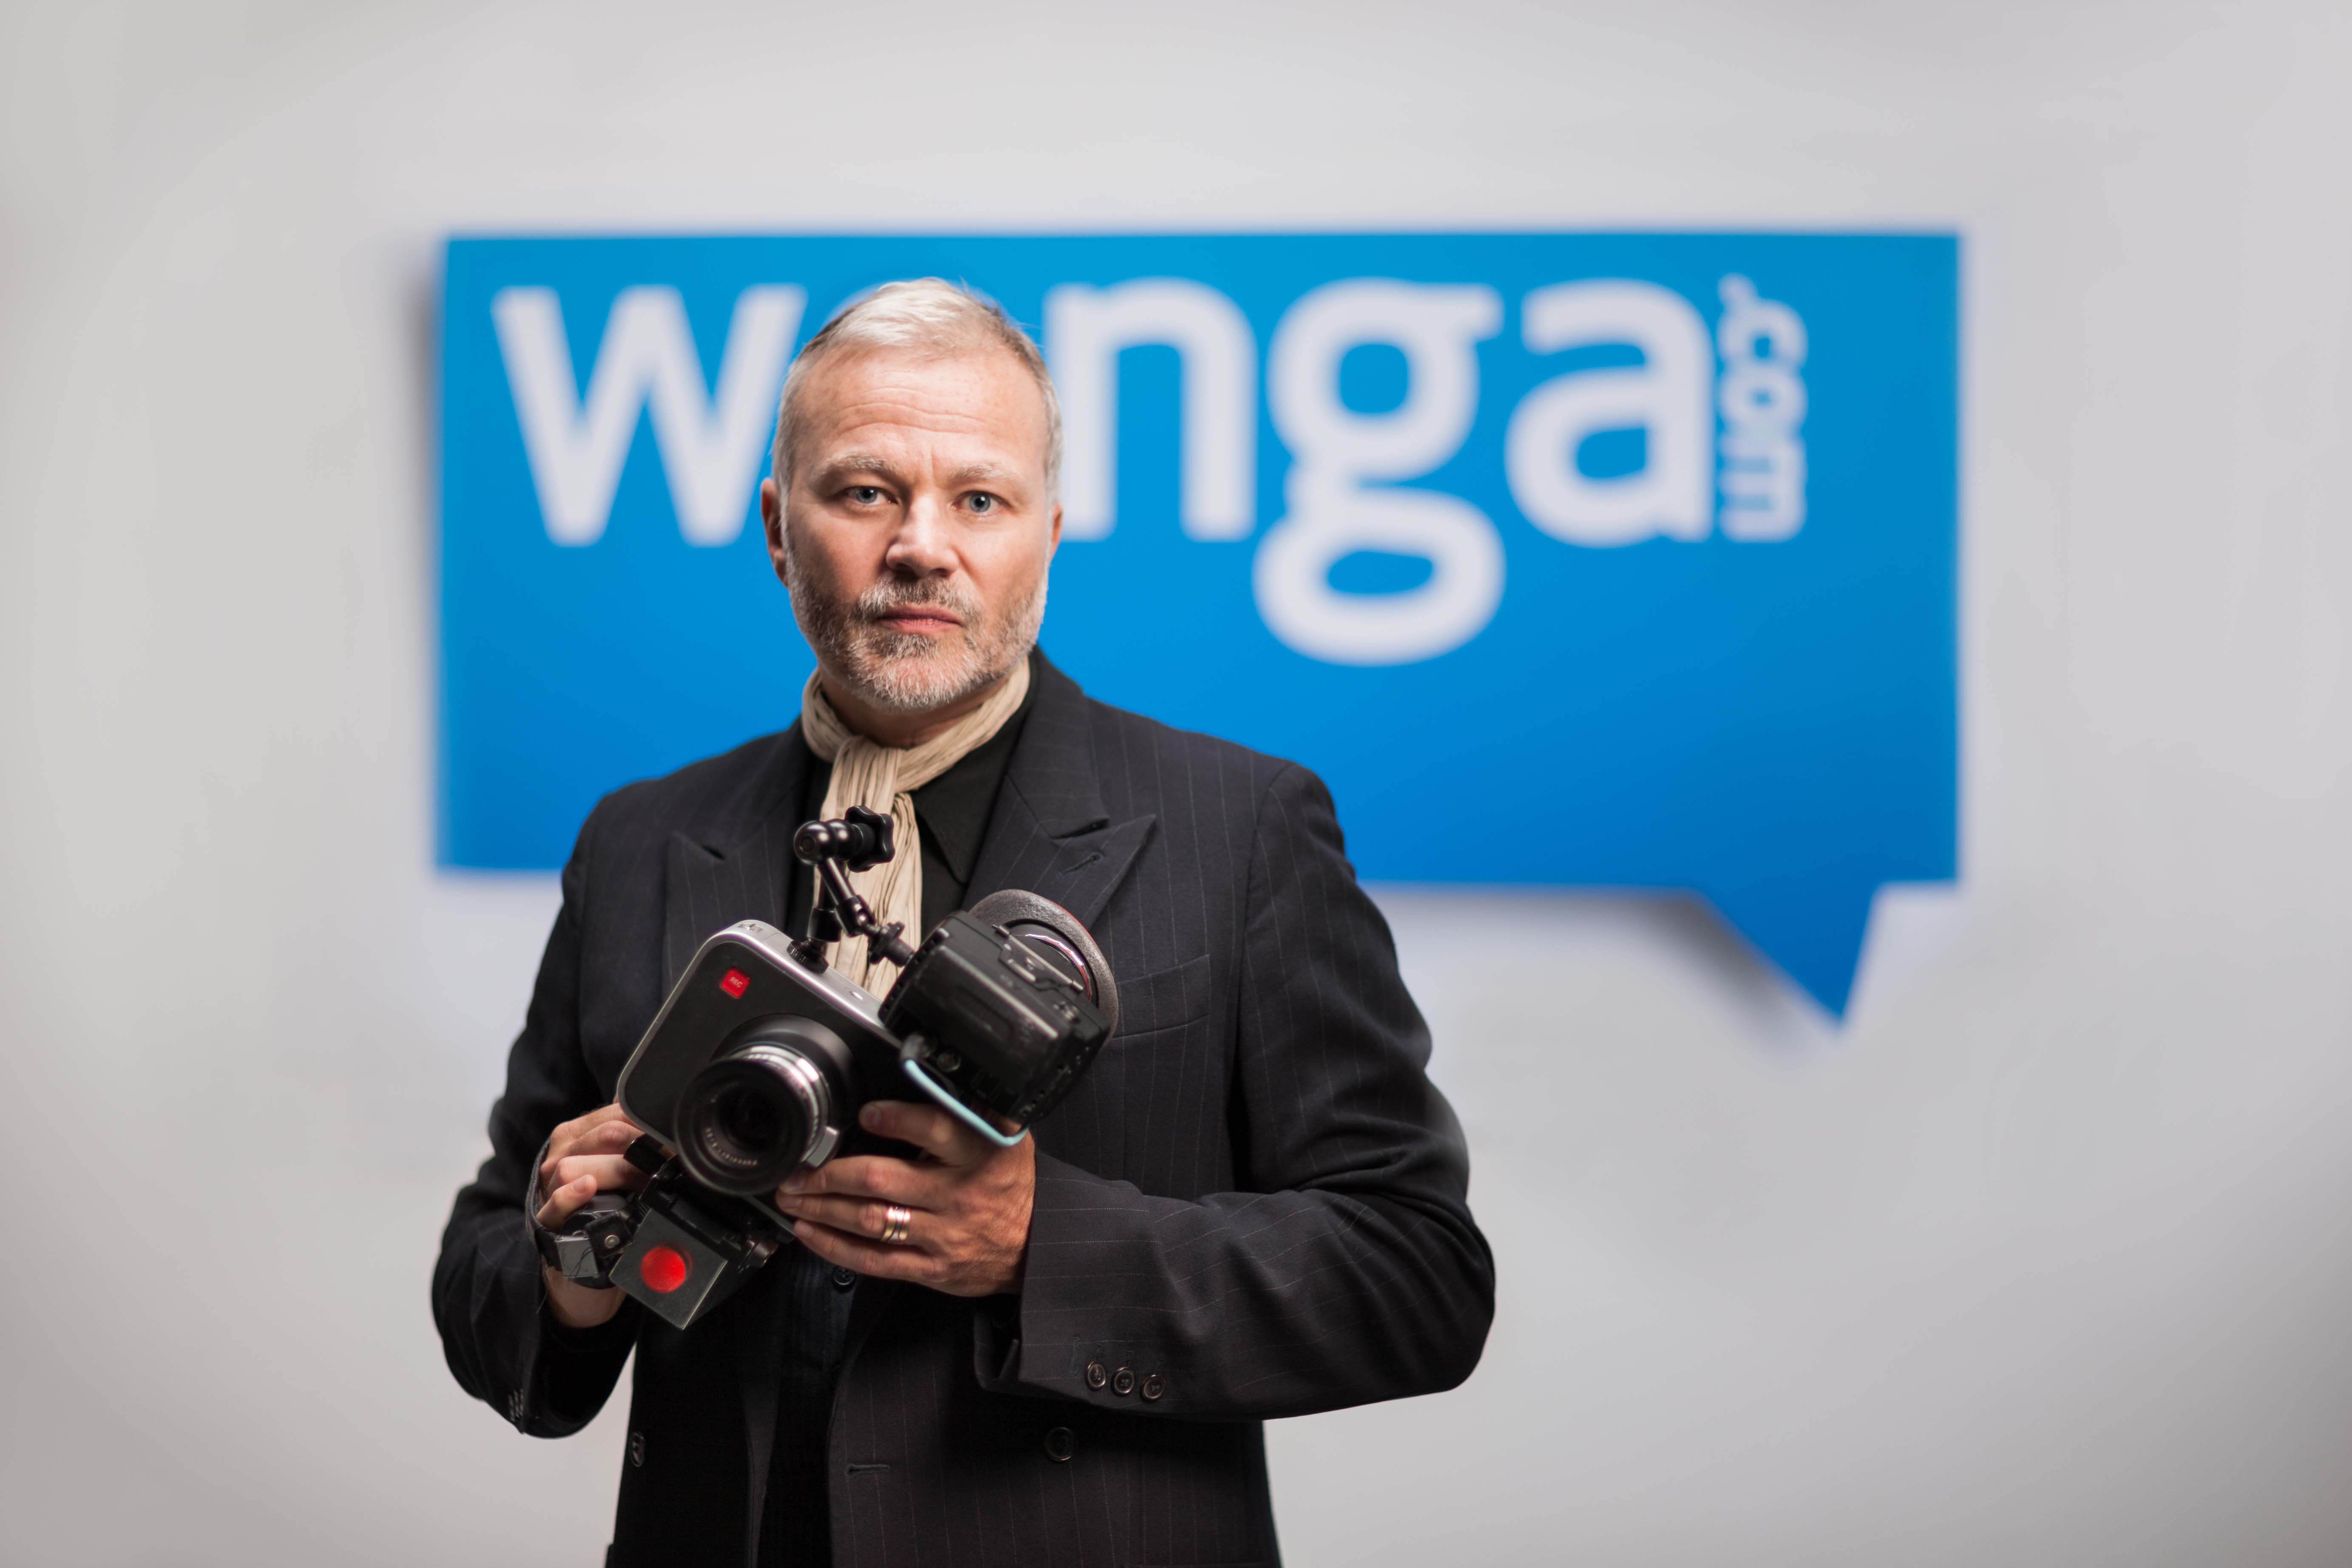 Wonga: The Movie is on the way